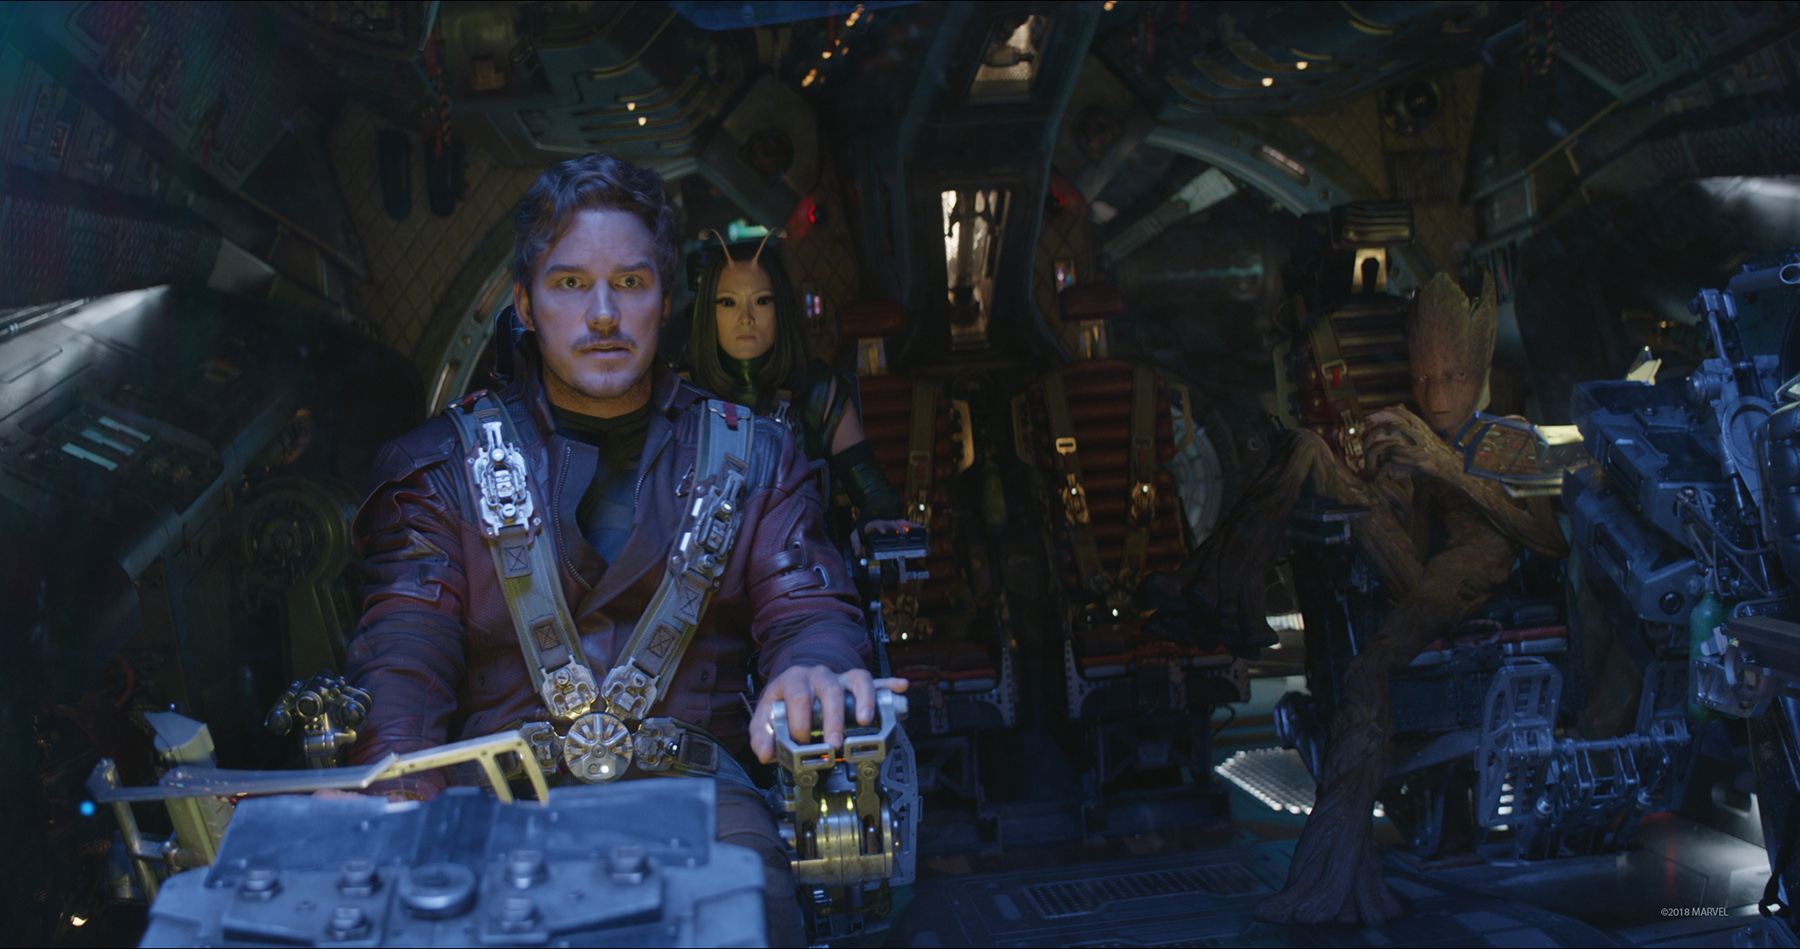 Designing A Spaceship For The Guardians Of The Galaxy